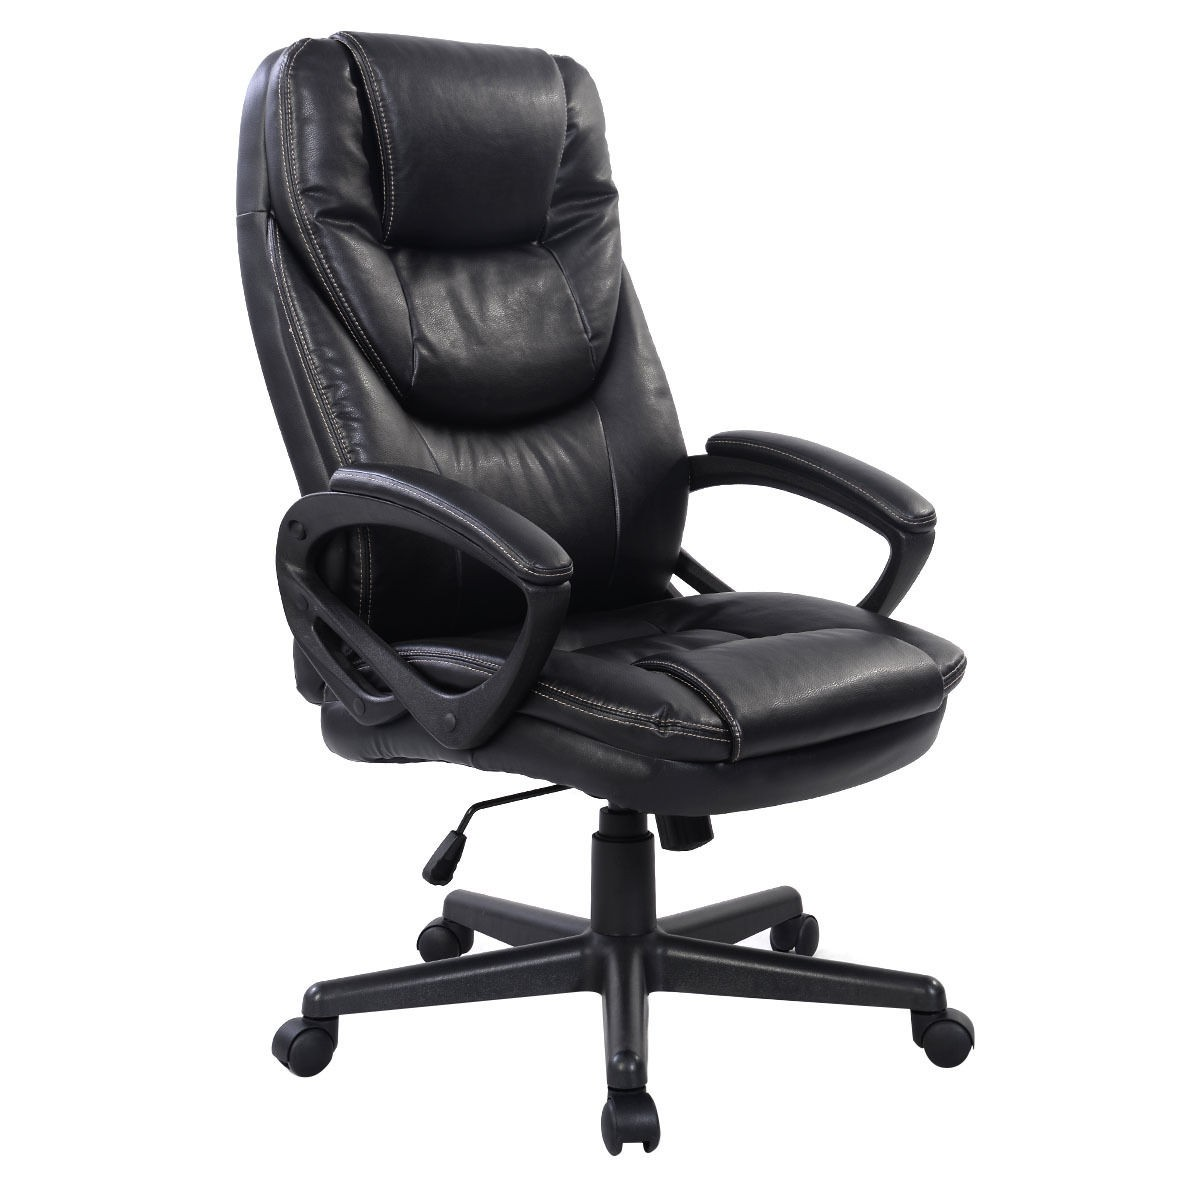 PU Leather High Back Office Chair Executive Task Ergonomic Computer Desk Blac